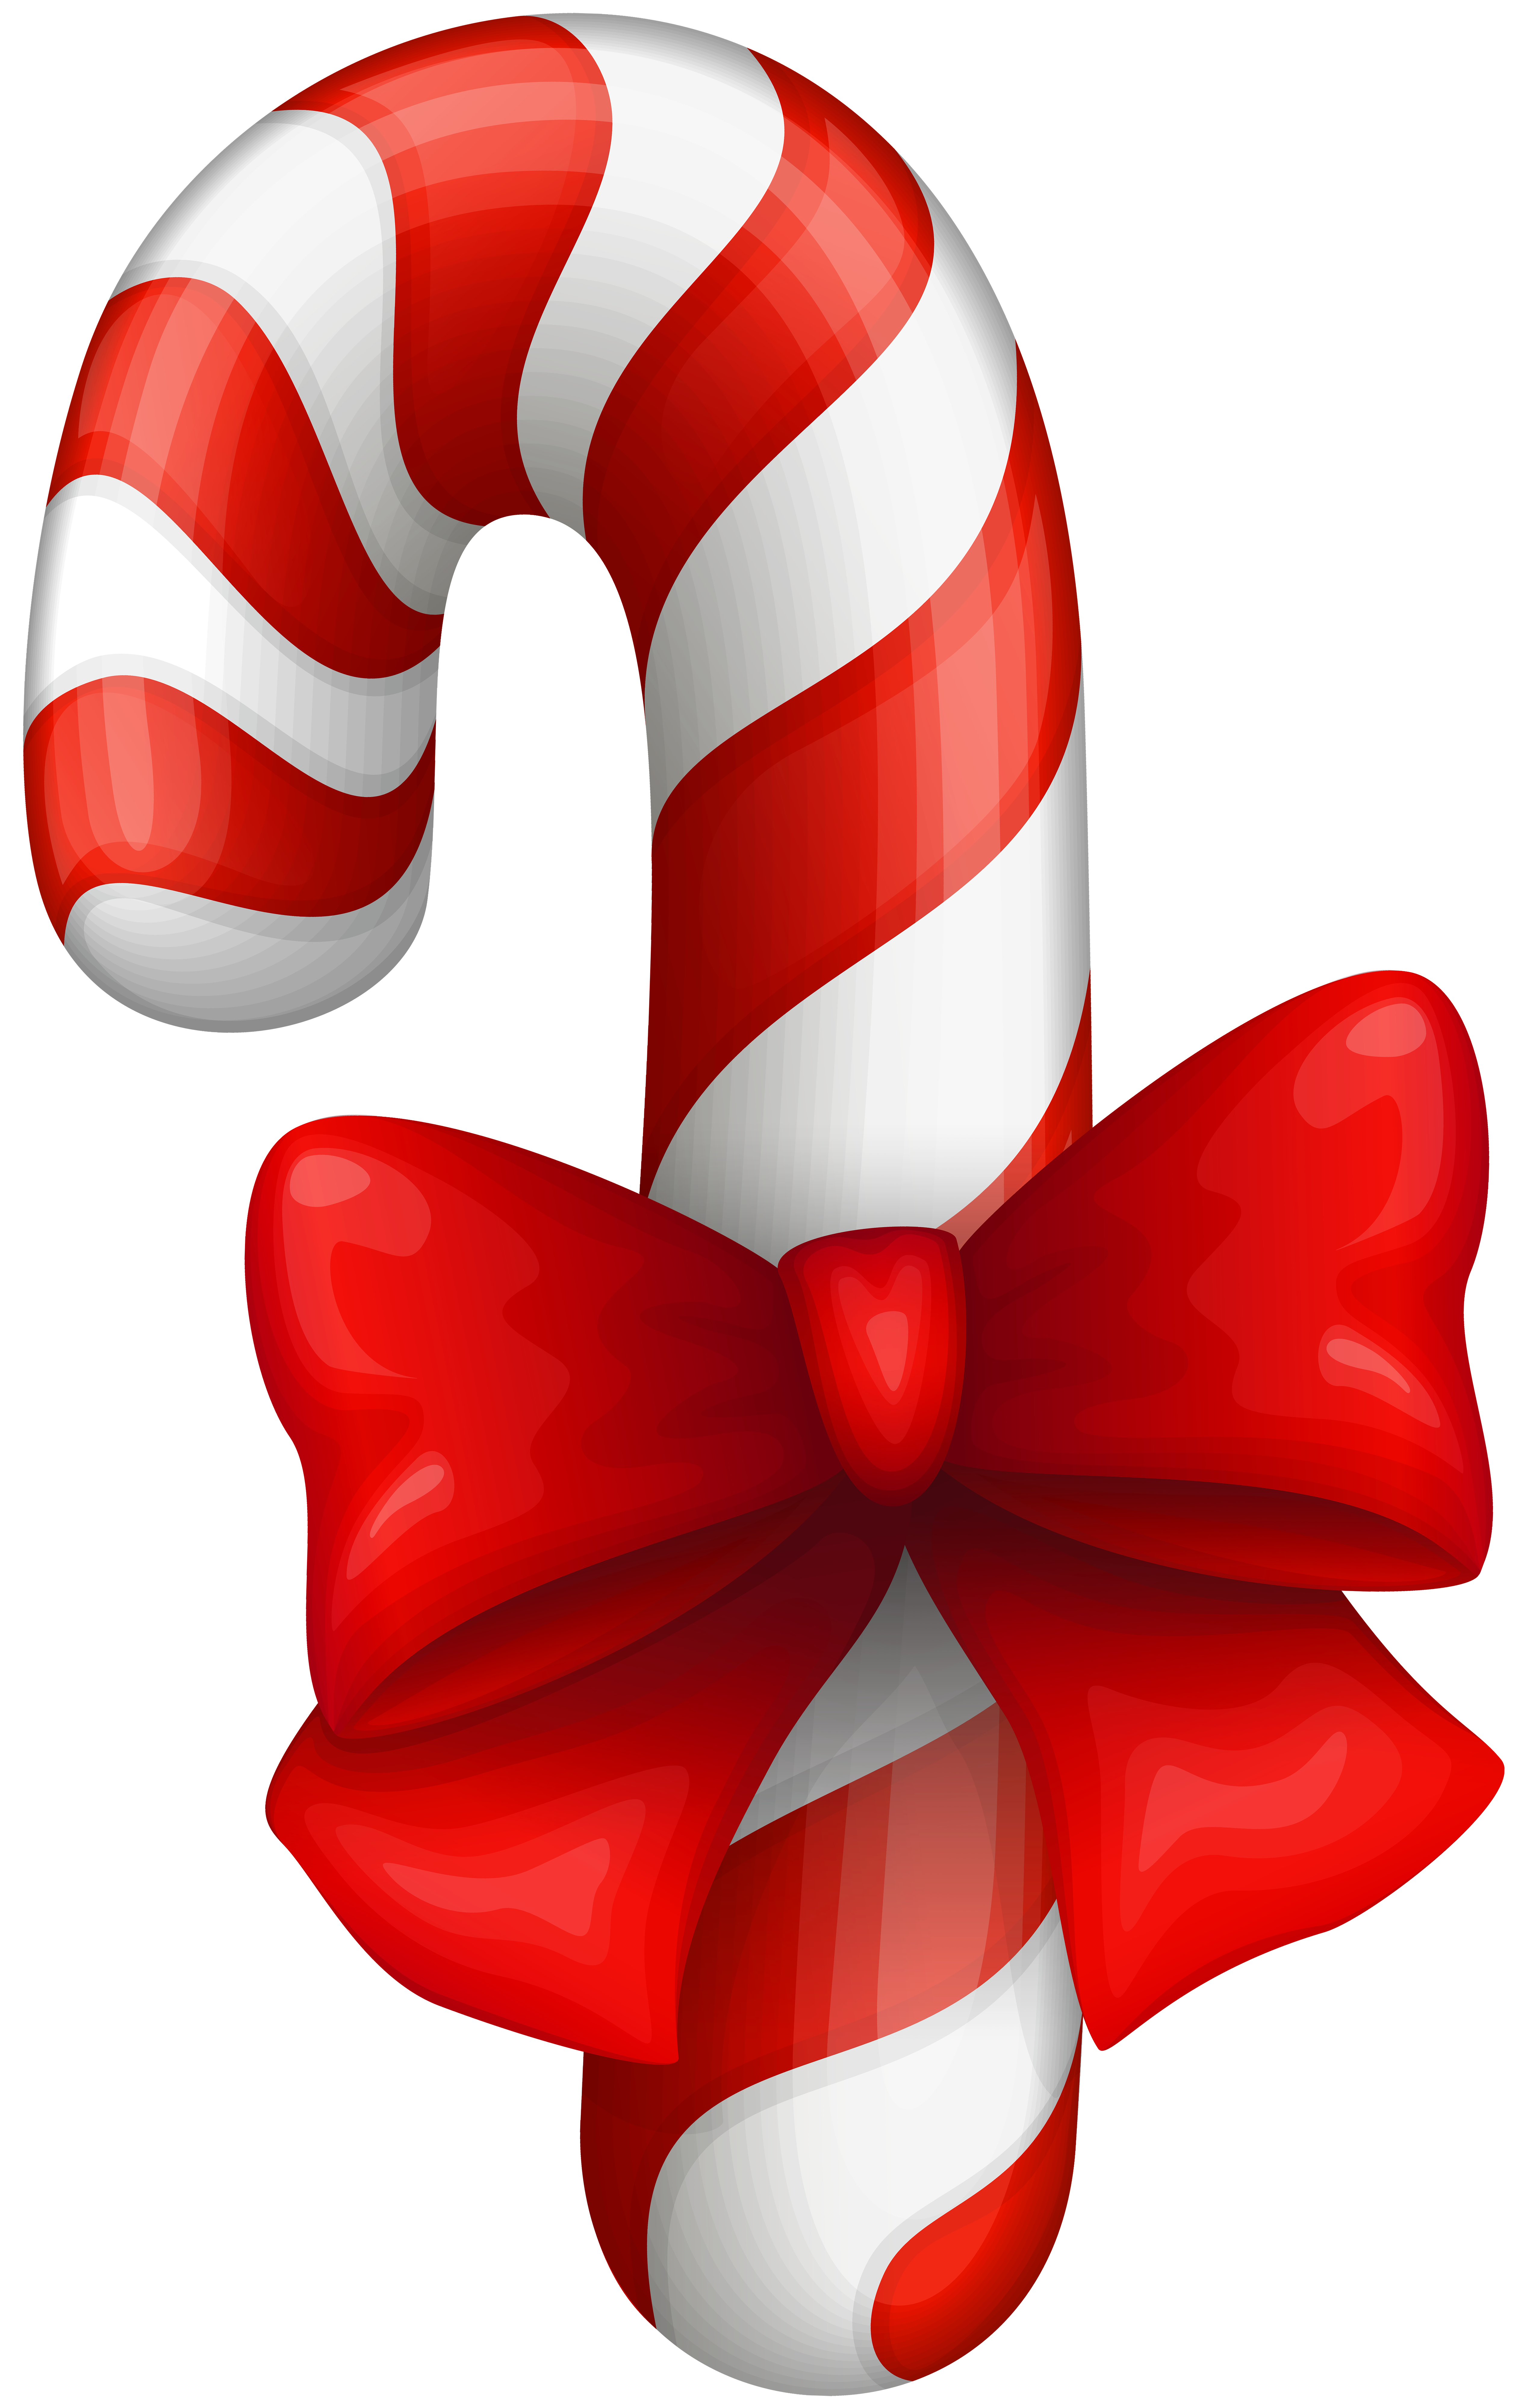 Candy Cane PNG Clip Art Image.